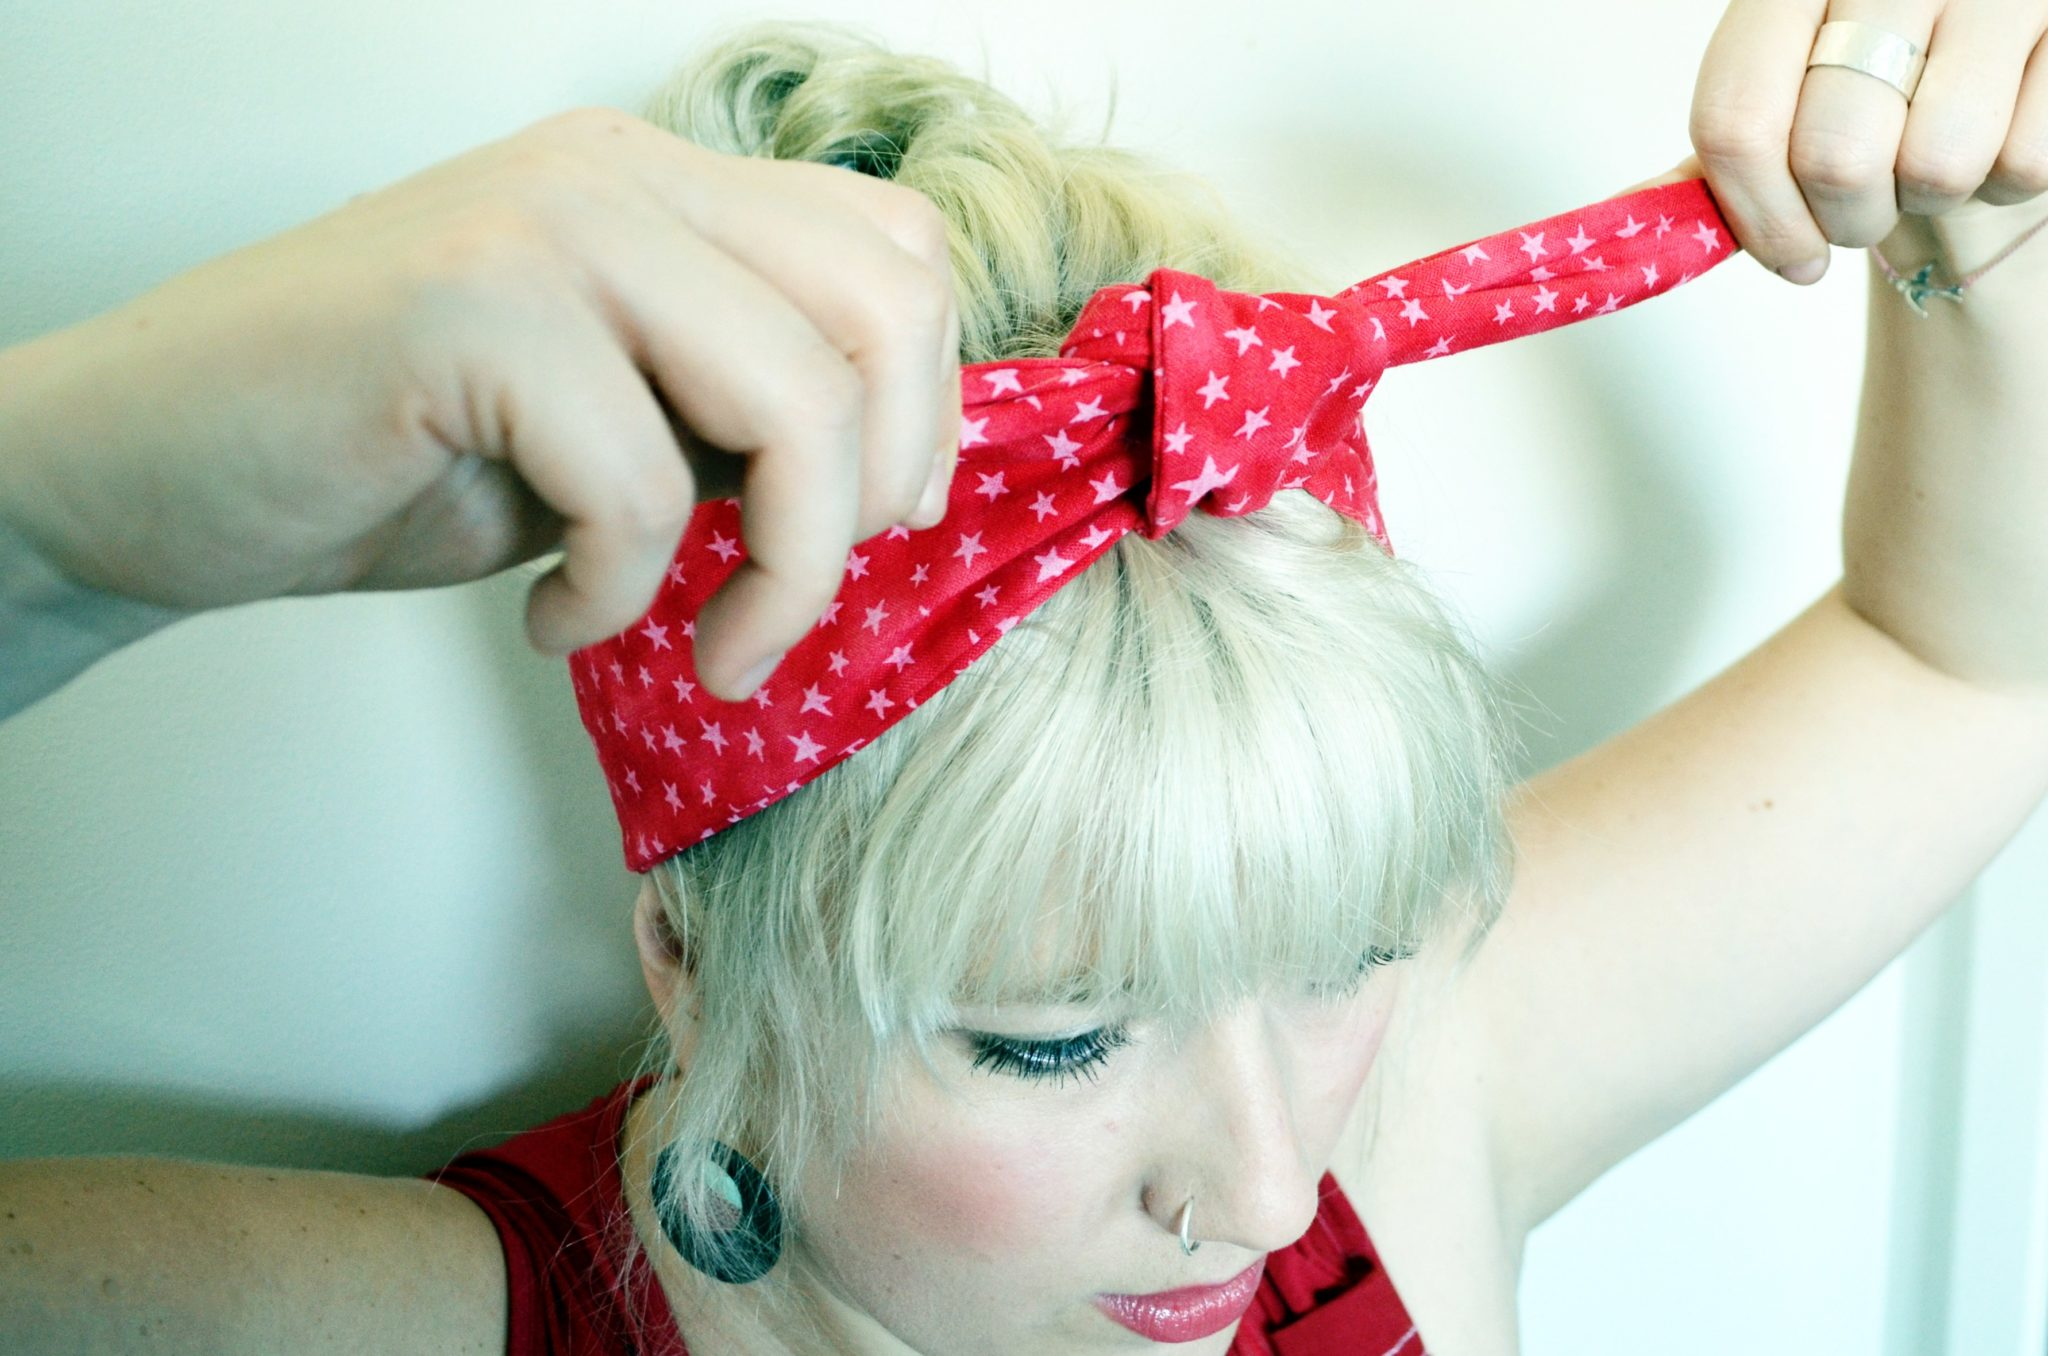 How to tie a rockabilly headband maple and oak designs 6 and finally pull on both ends tadaaa the perfect rockabilly headband knot if its not perfectly flat you can always adjust it a bit with your fingers ccuart Gallery